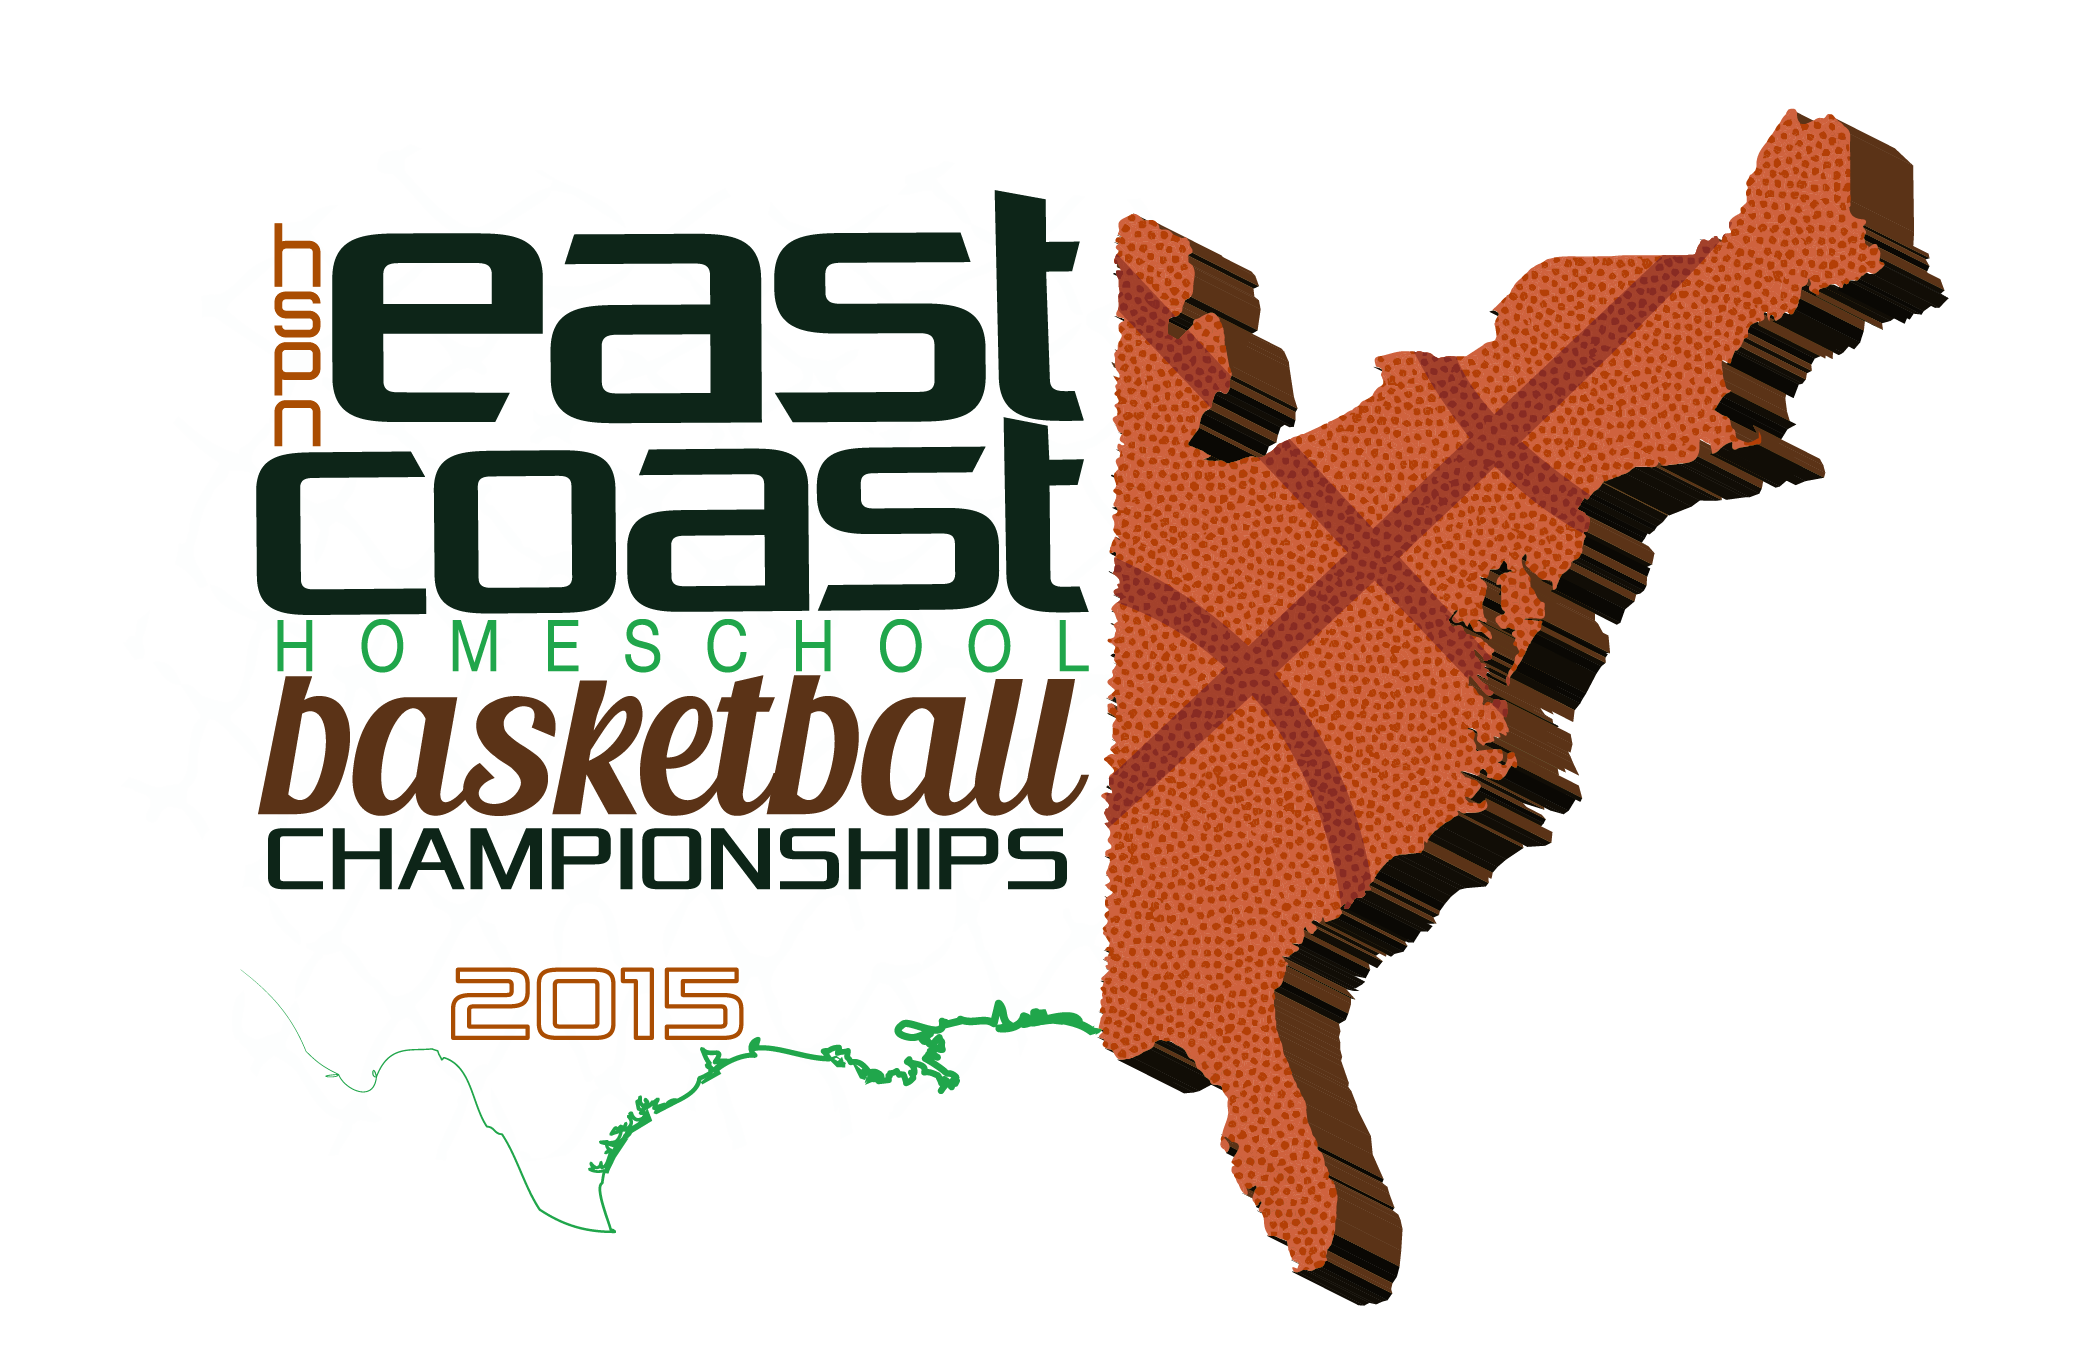 The official website of the 2015 East Coast Homeschool Basketball Championships